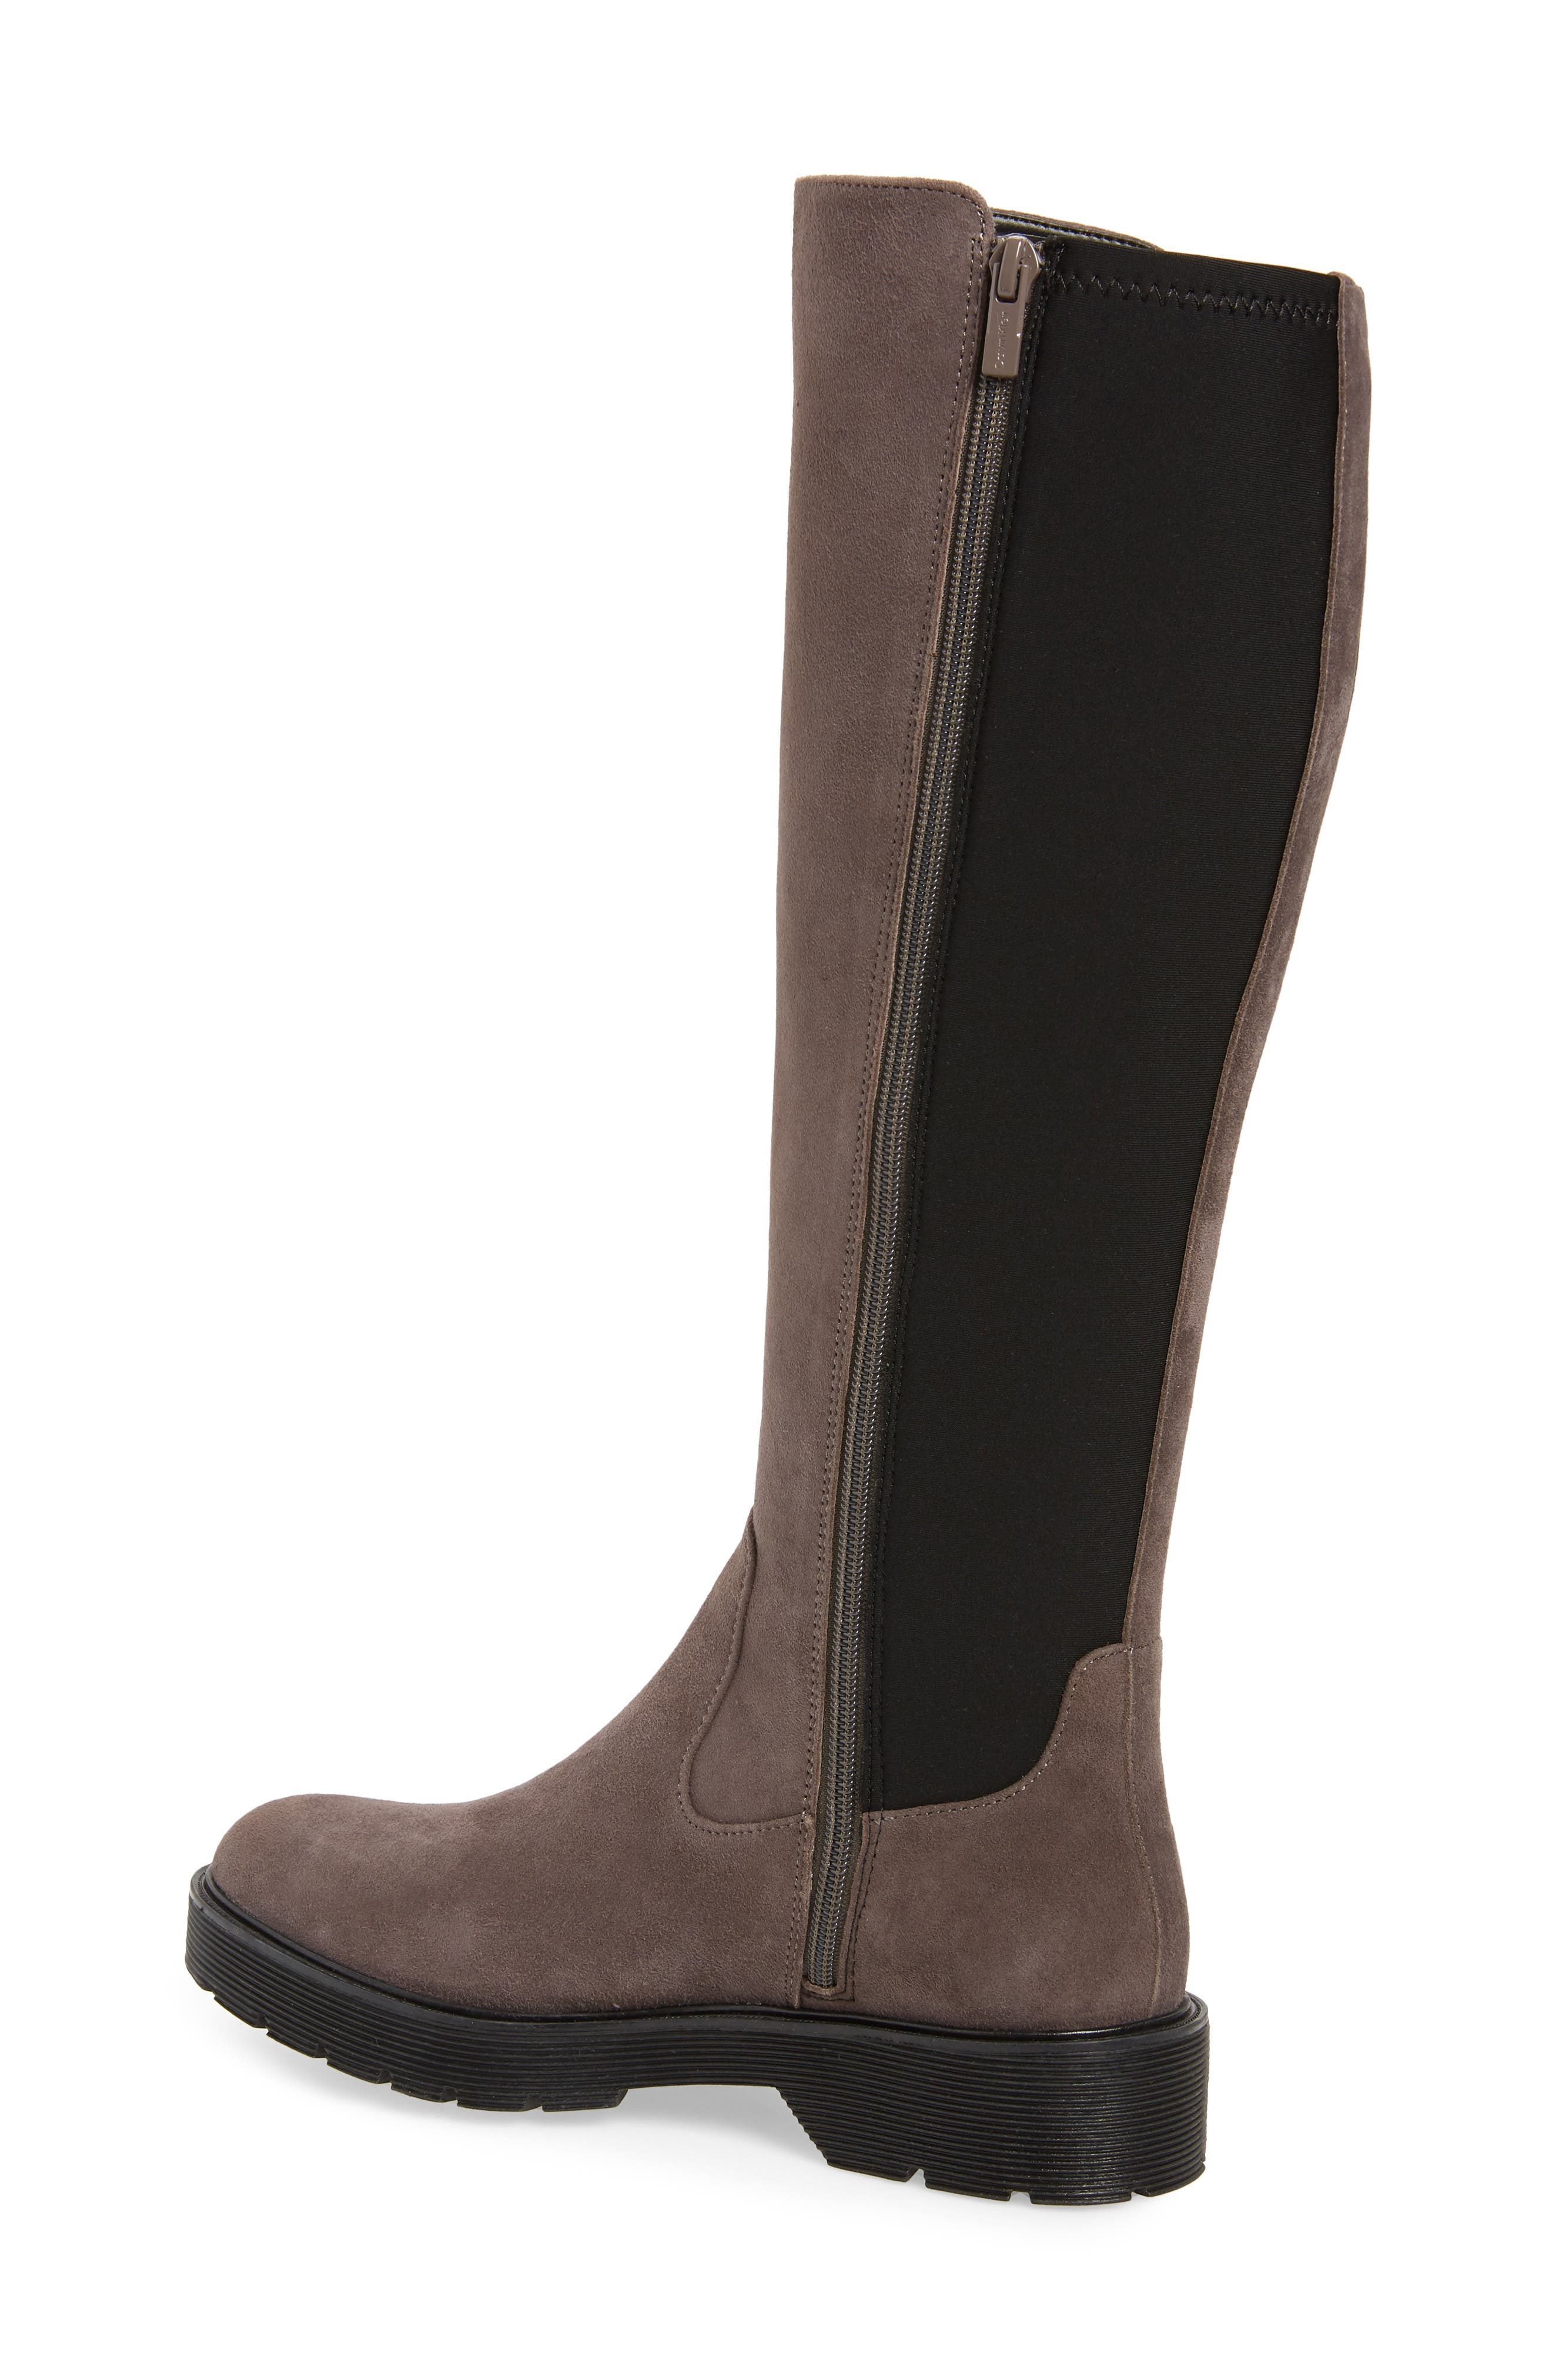 Themis Knee High Riding Boot,                             Alternate thumbnail 2, color,                             DARK UTILITY/ BLACK SUEDE